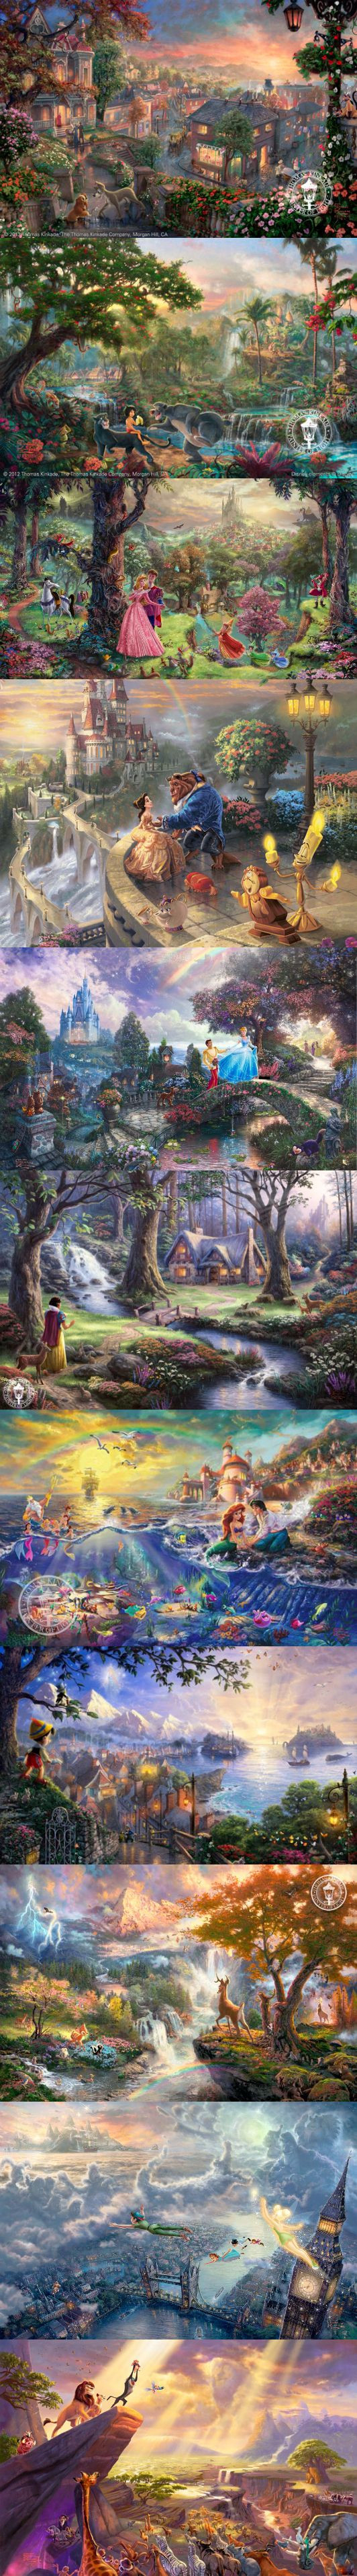 Oh my gosh...I can't even...Thomas Kinkade is my favorite...and...I'm speechless...  Thomas Kinkade's Disney Landscapes